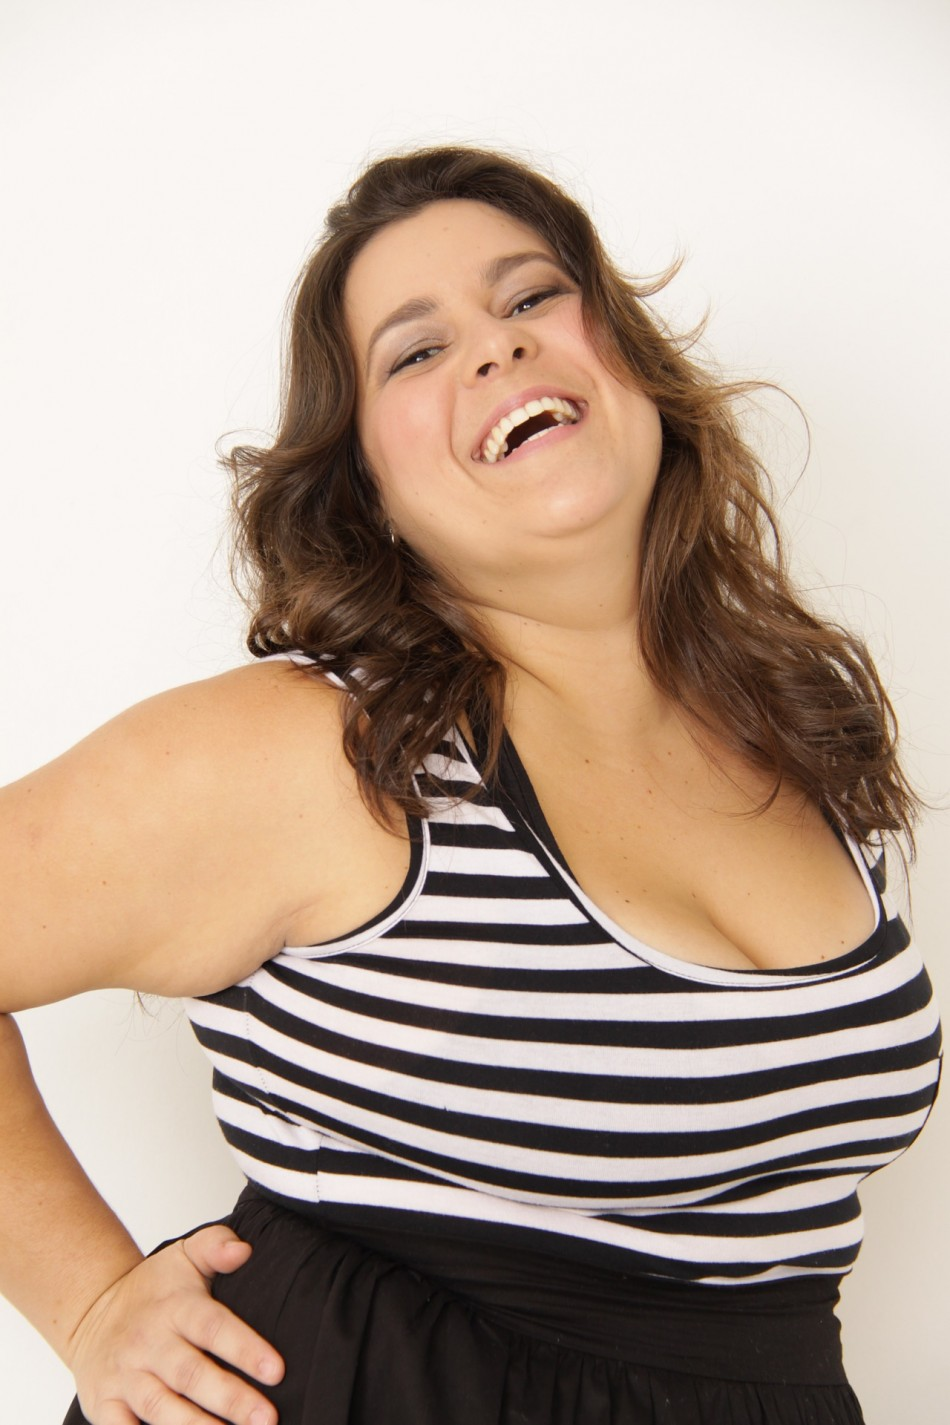 benefits of online dating for plus size women